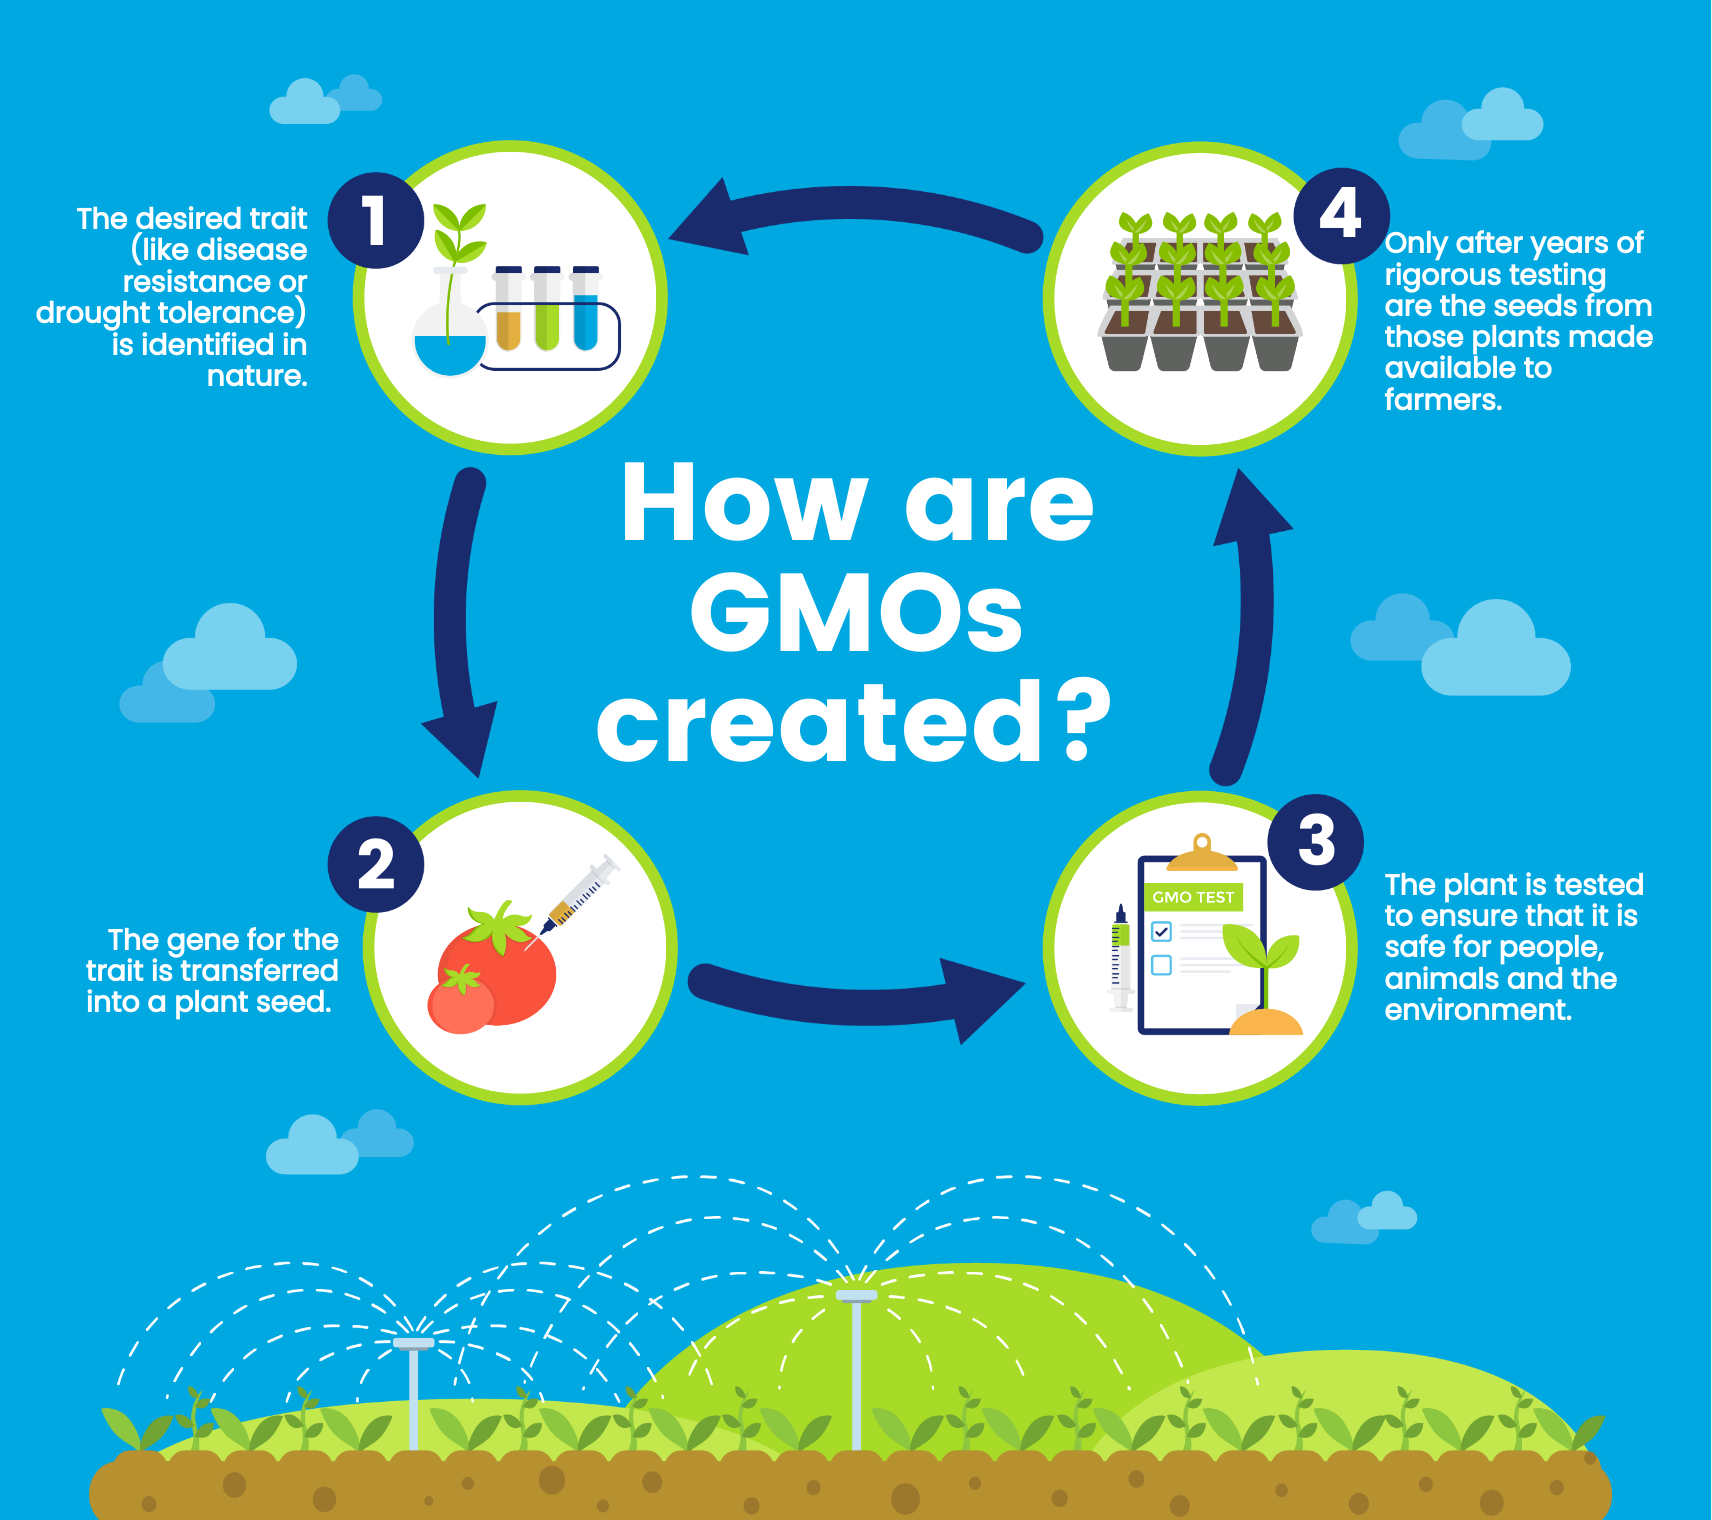 An infographic about how GMOs are created